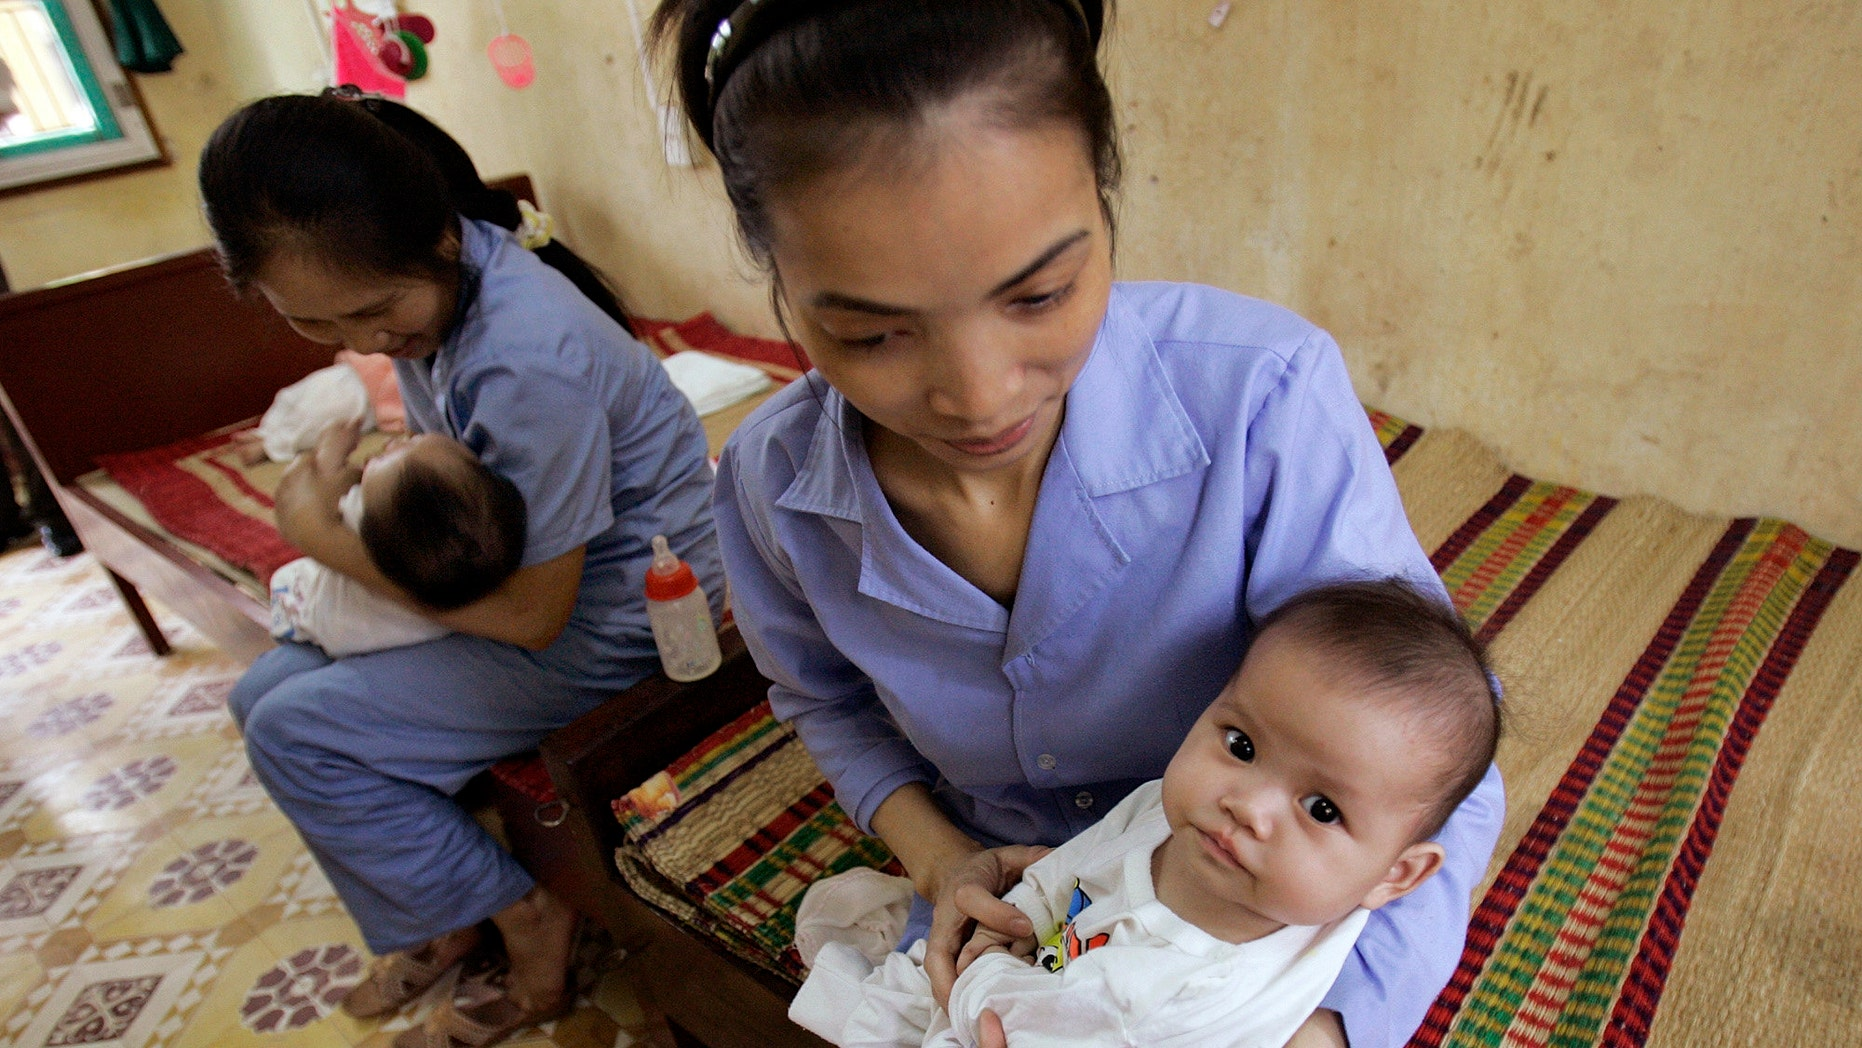 April 23, 2008 FILE photo of 5-month-old baby girls cradled by workers at an orphanage in Bac Ninh province, near Hanoi, Vietnam. Vietnam and the US will soon resume limited inter-country adoptions, 6 years after an imposed ban because of allegations of widespread baby-selling and children offered without the consent of birth parents.